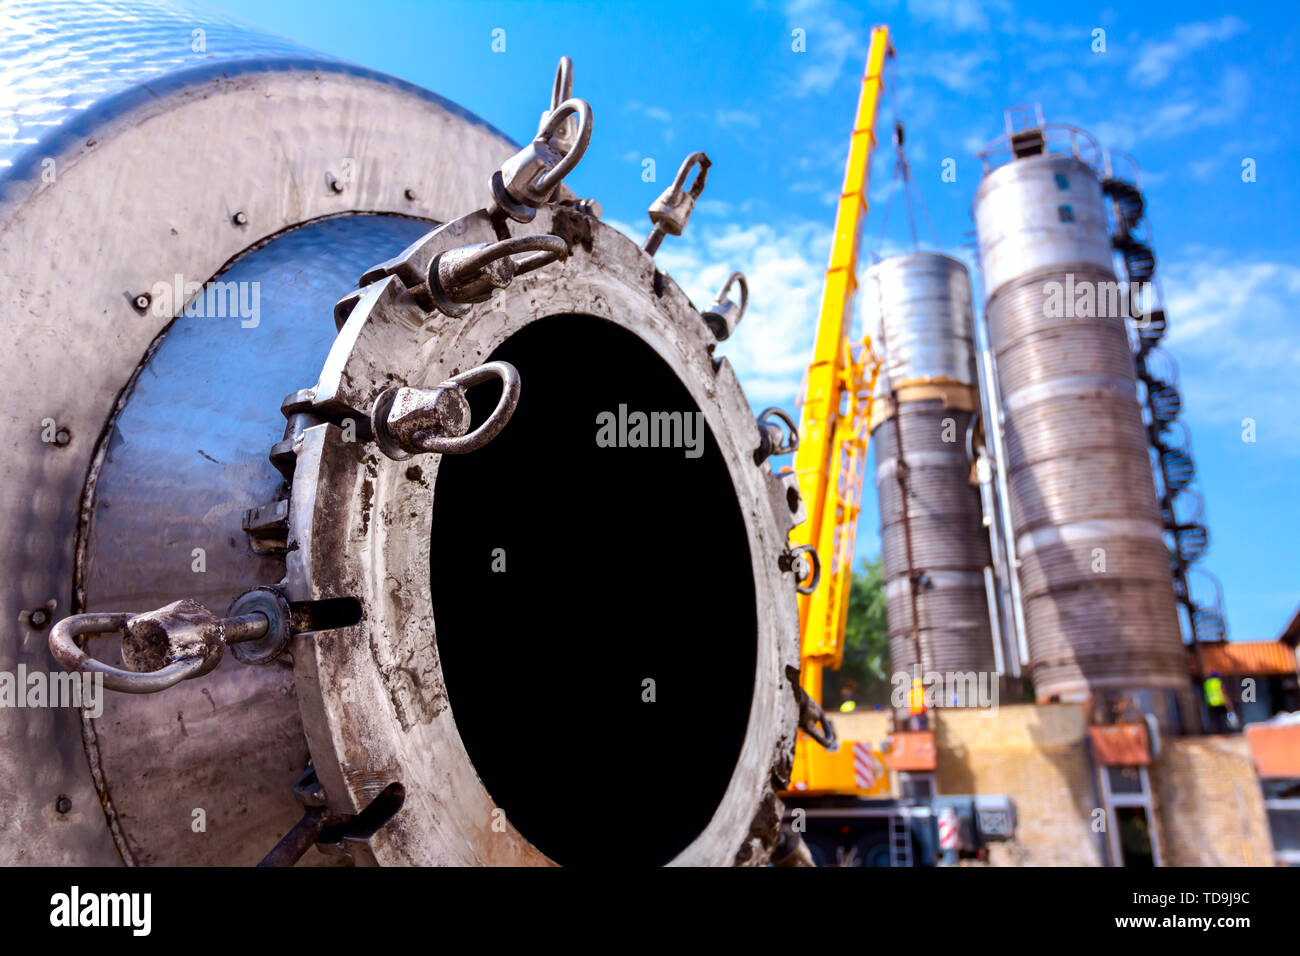 Bottom of disassembled obsolete massive old metal silos waiting for cassation. - Stock Image